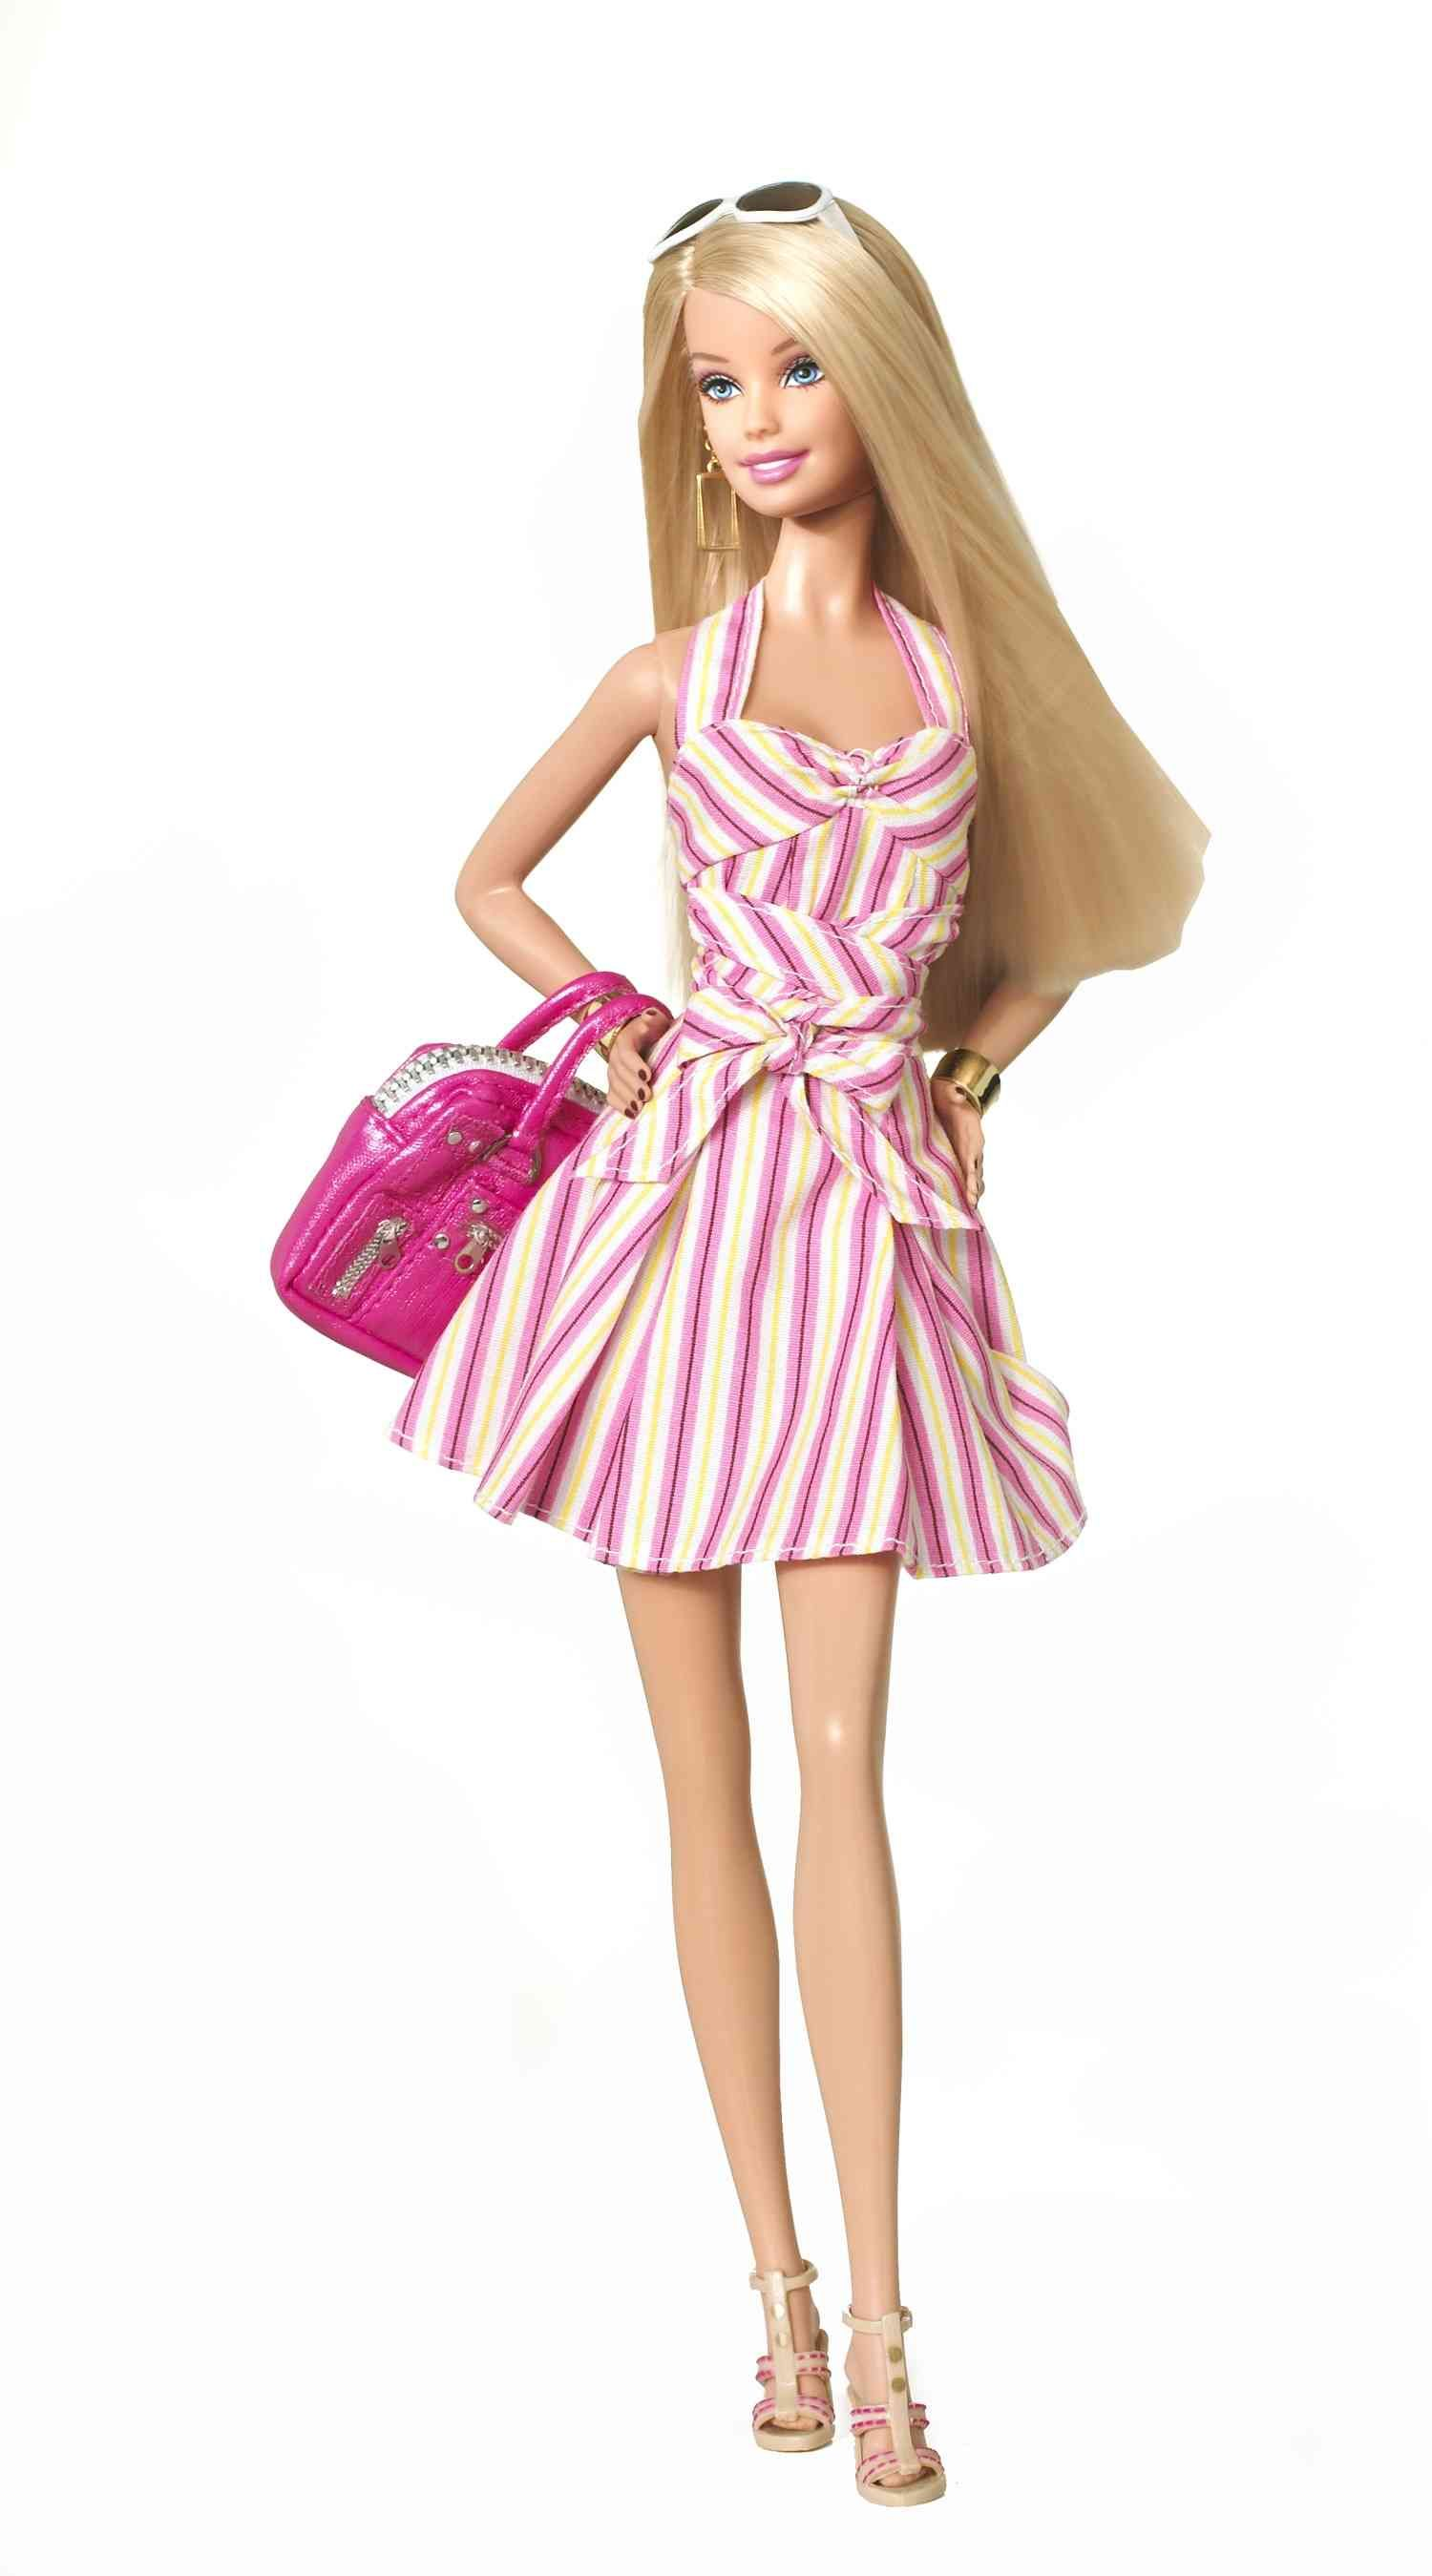 Other Dolls Dolls, Clothing & Accessories Delightful Decorative Doll Elegant Appearance